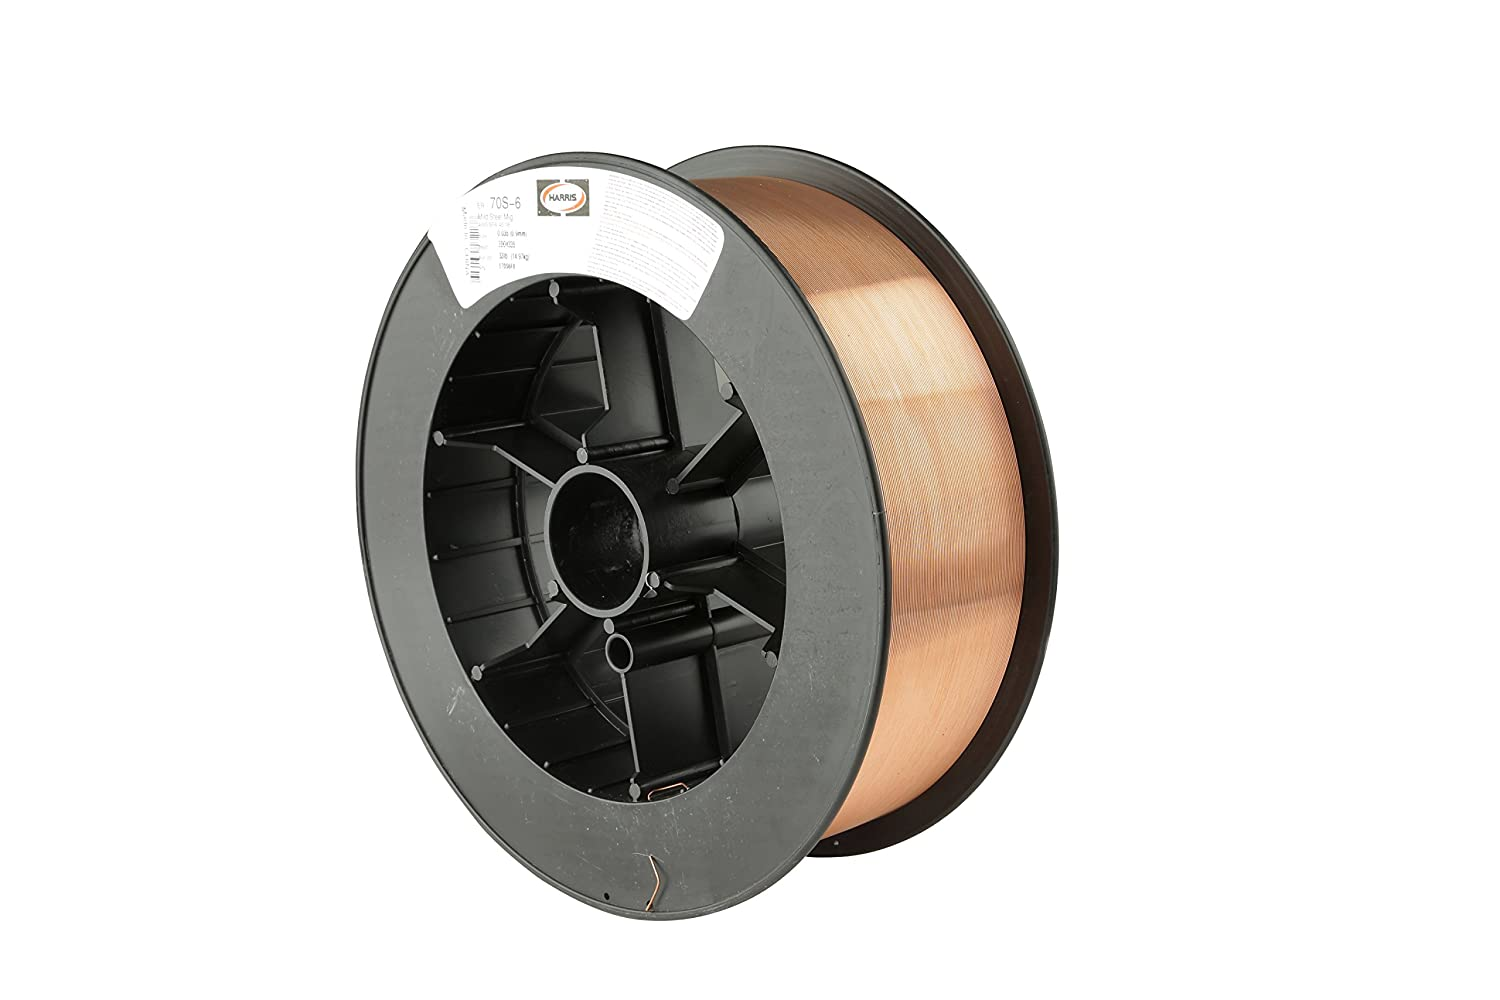 Harris E70S6E5 ER70S-6 MS Spool with Welding Wire, 0.030 lb. x 11 lb. Harris Products Group